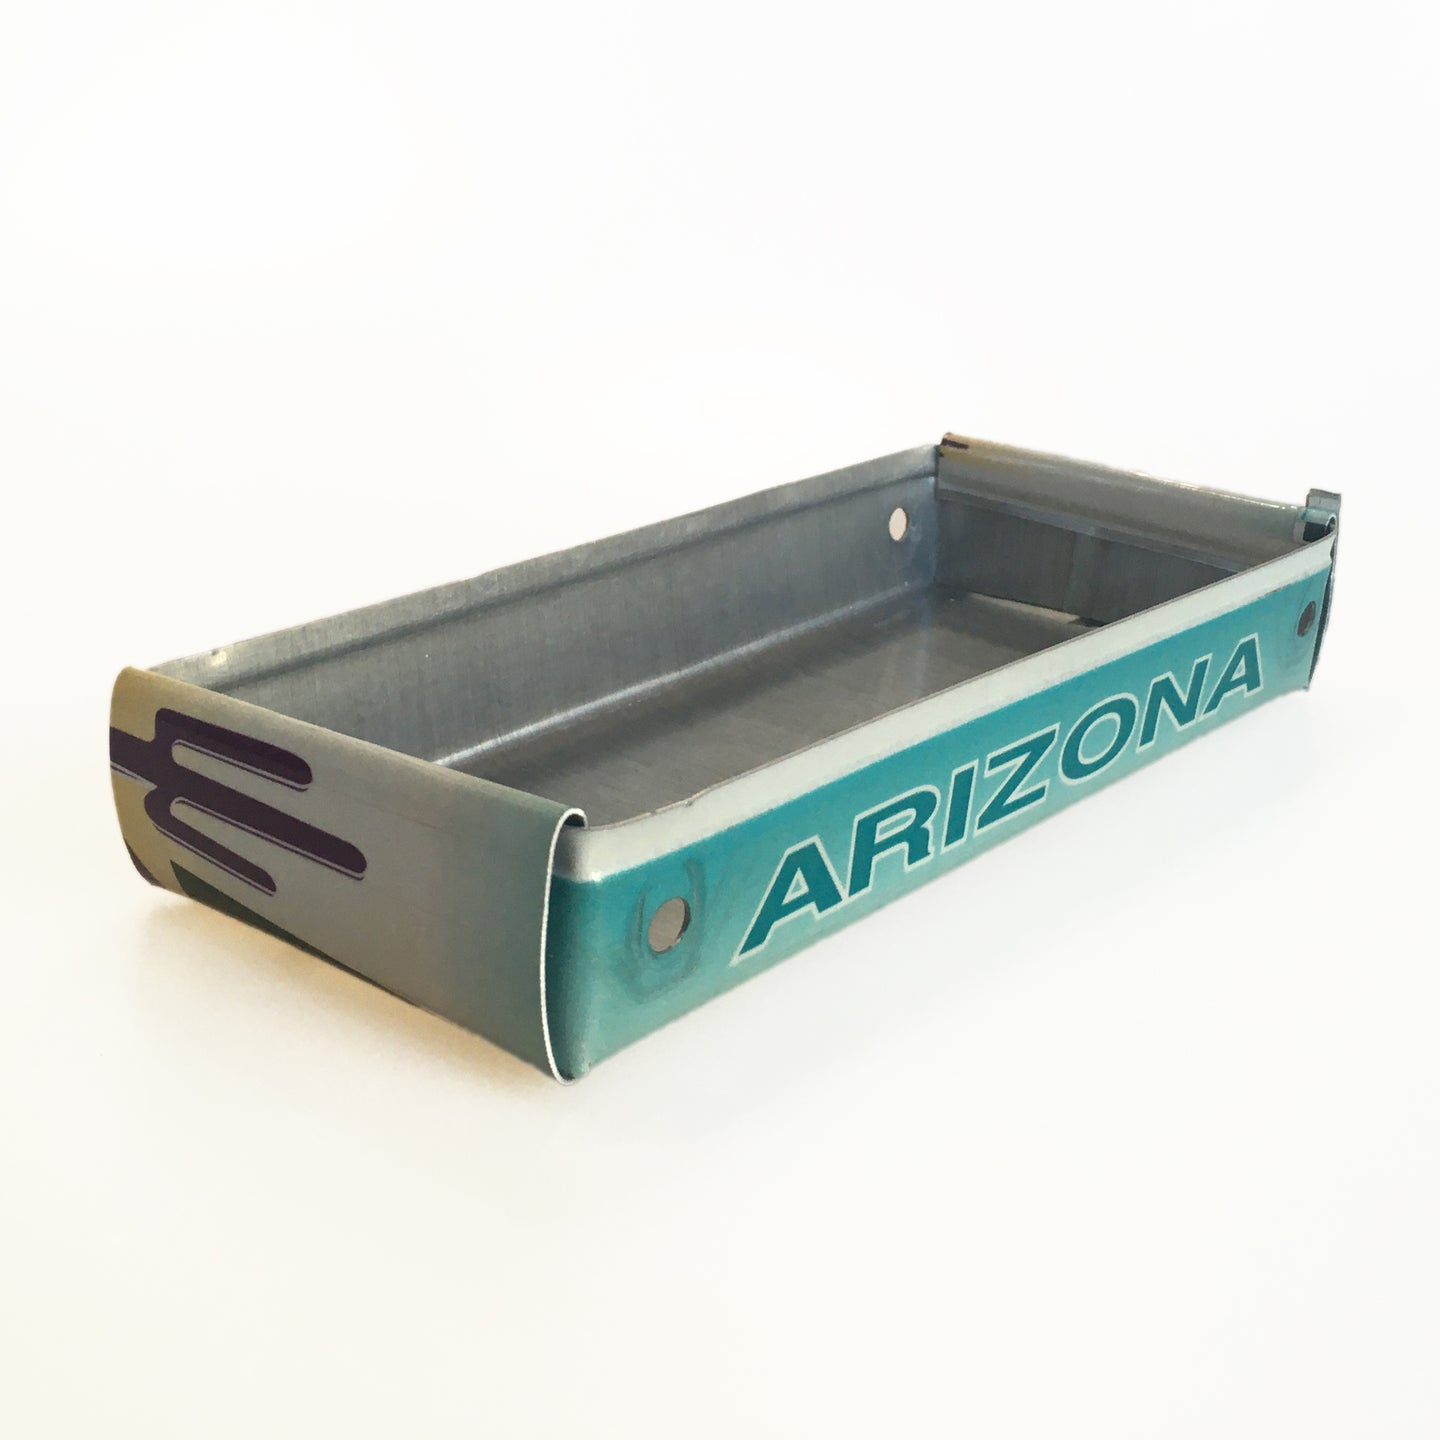 Arizona License Holder Tray